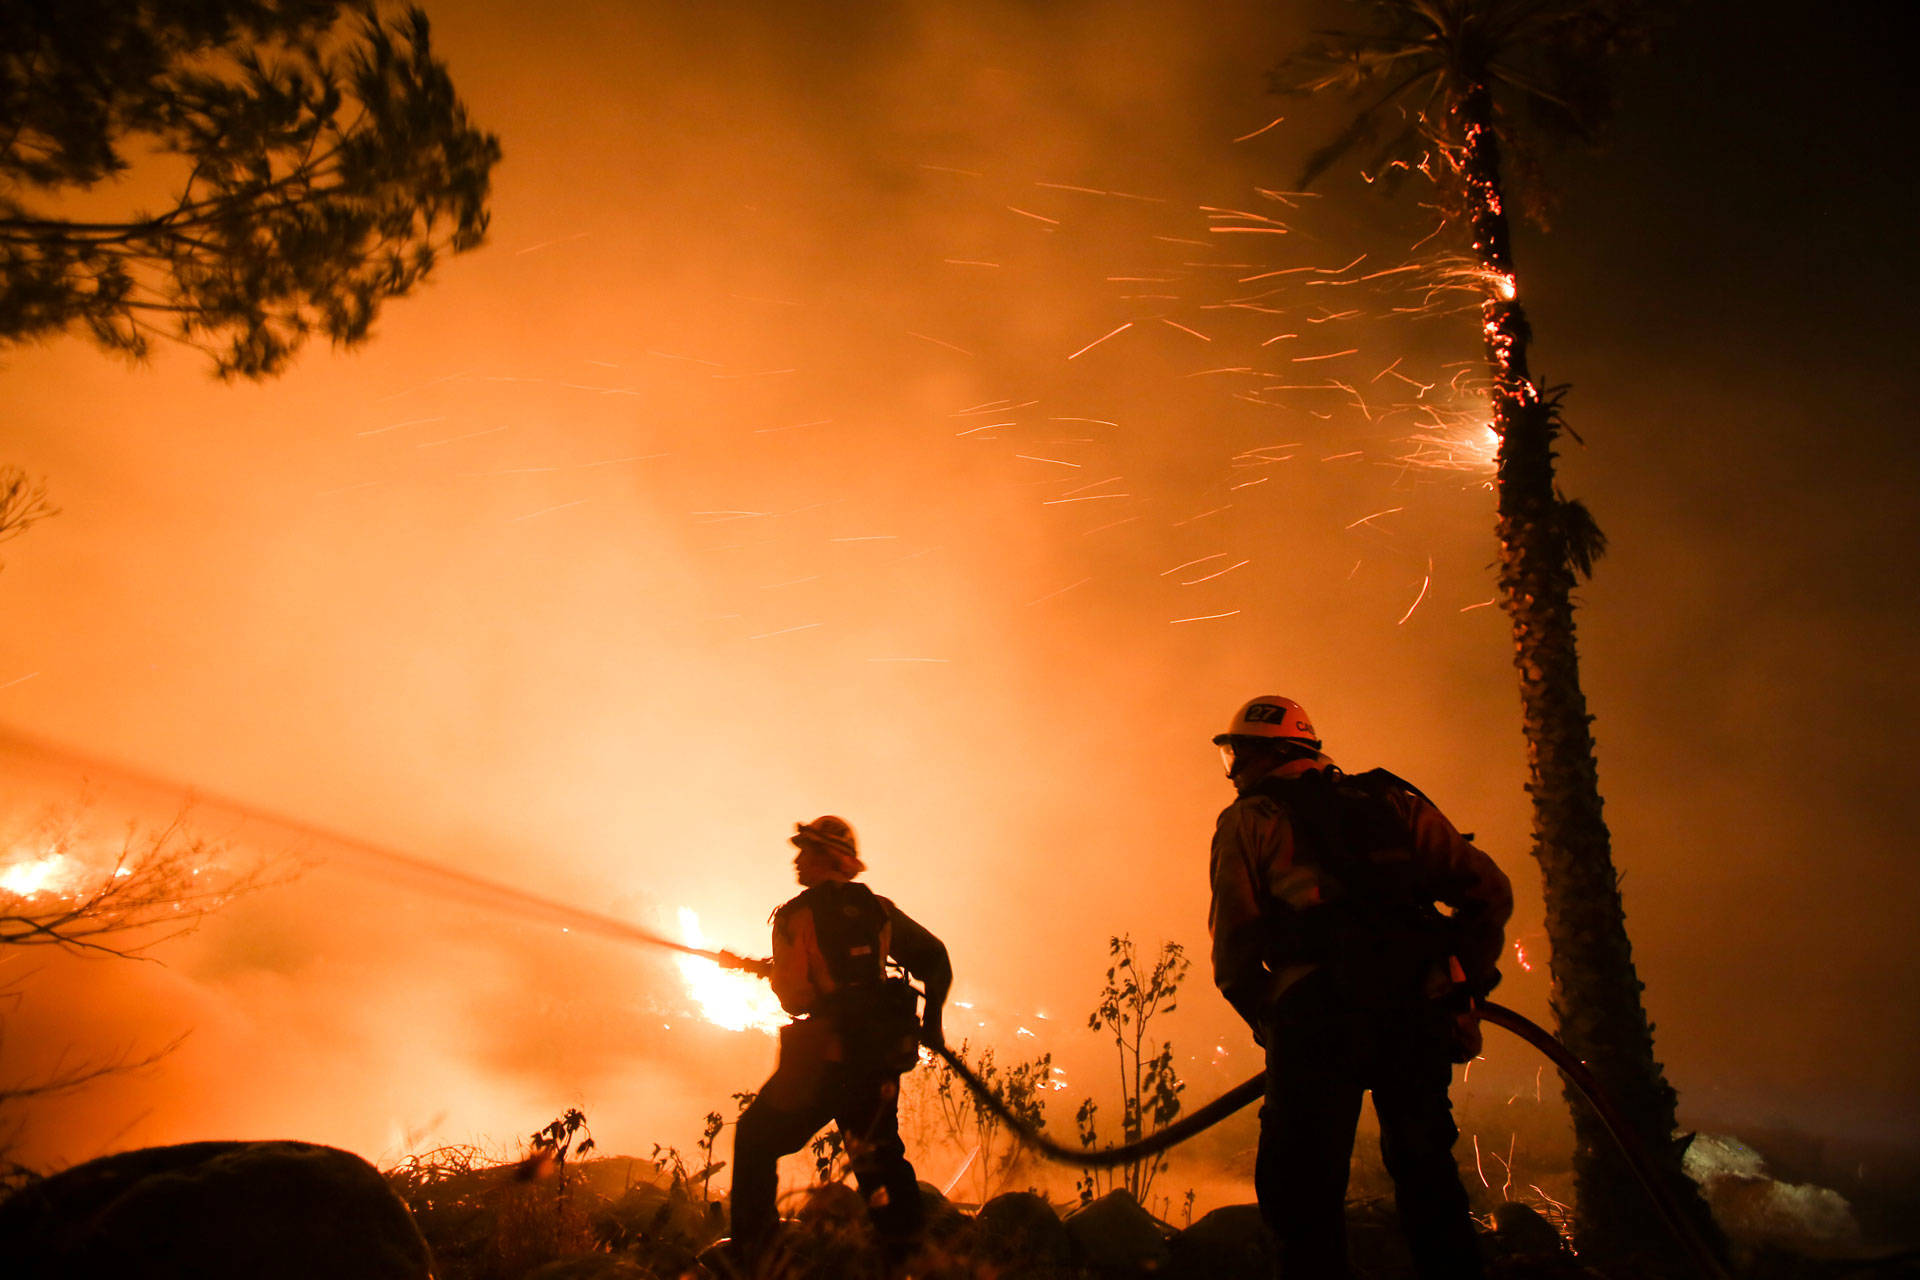 Firefighters battle the Thomas Fire as it burns along a hillside near homes in Santa Paula, northeast of Ventura, on Dec. 5, 2017. RINGO CHIU/AFP/Getty Images